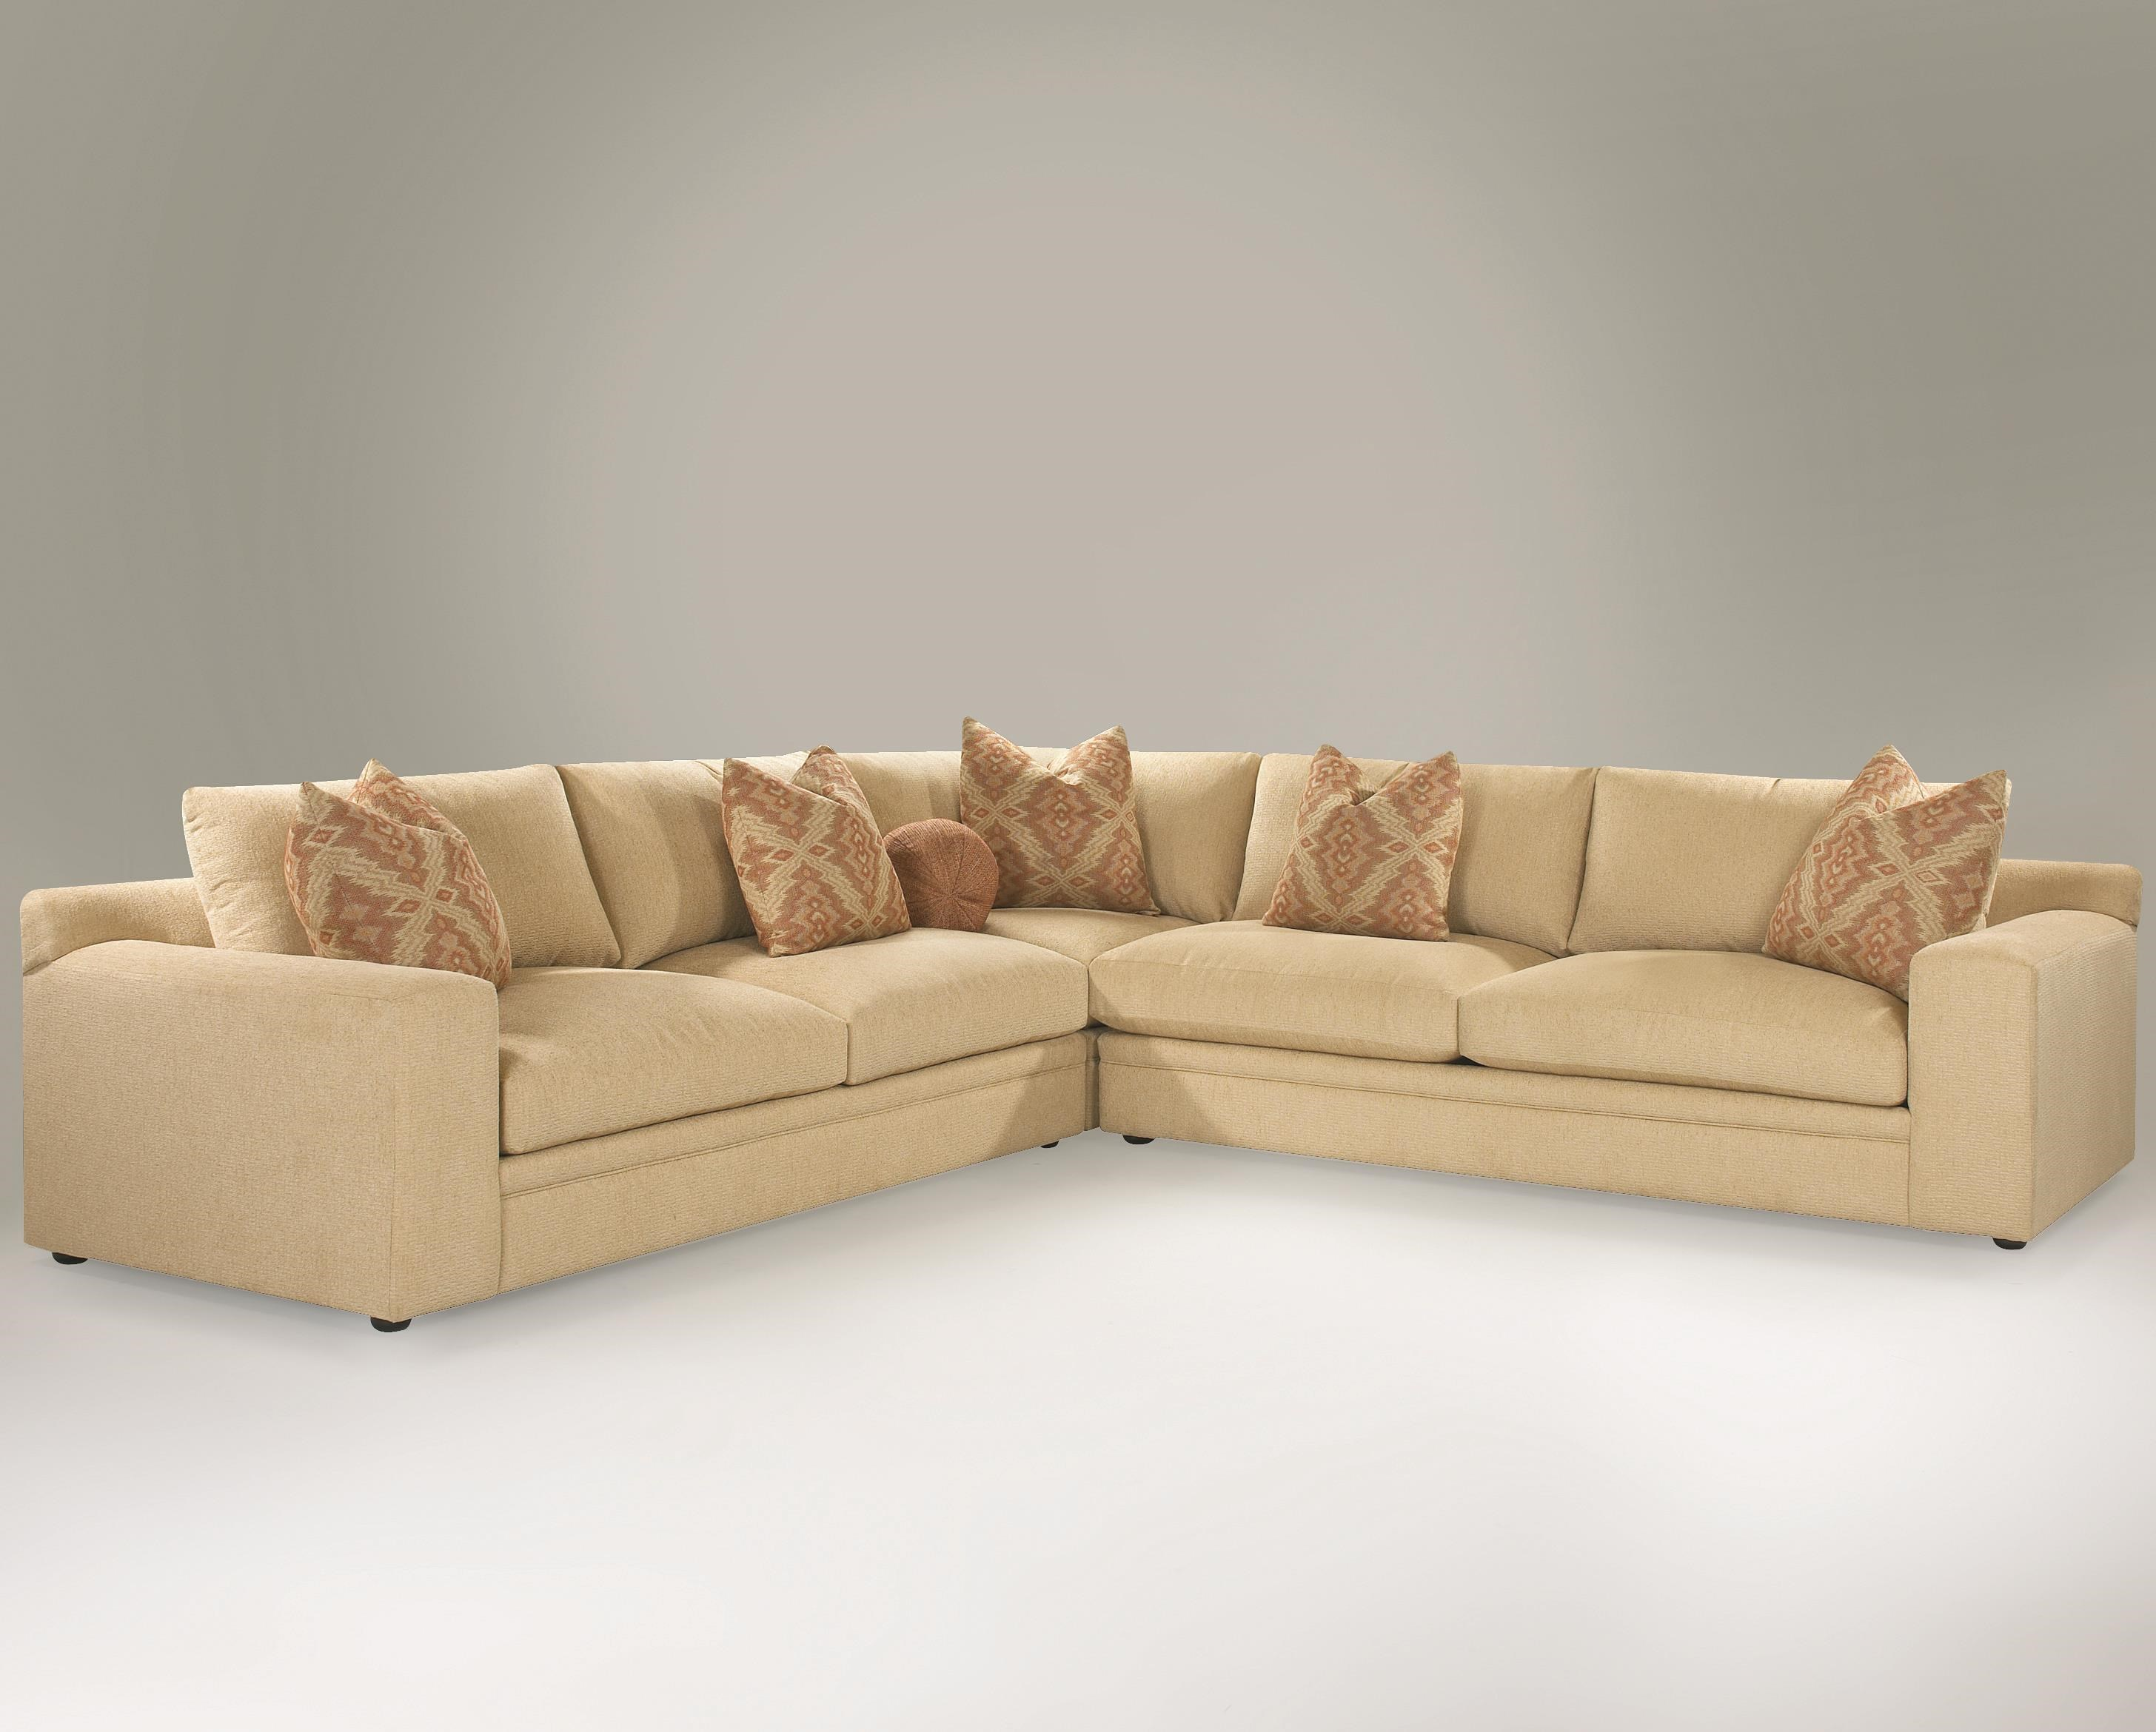 klaussner casa mesa casual 3piece sectional sofa with track arms and loose back pillows - 3 Piece Sectional Sofa